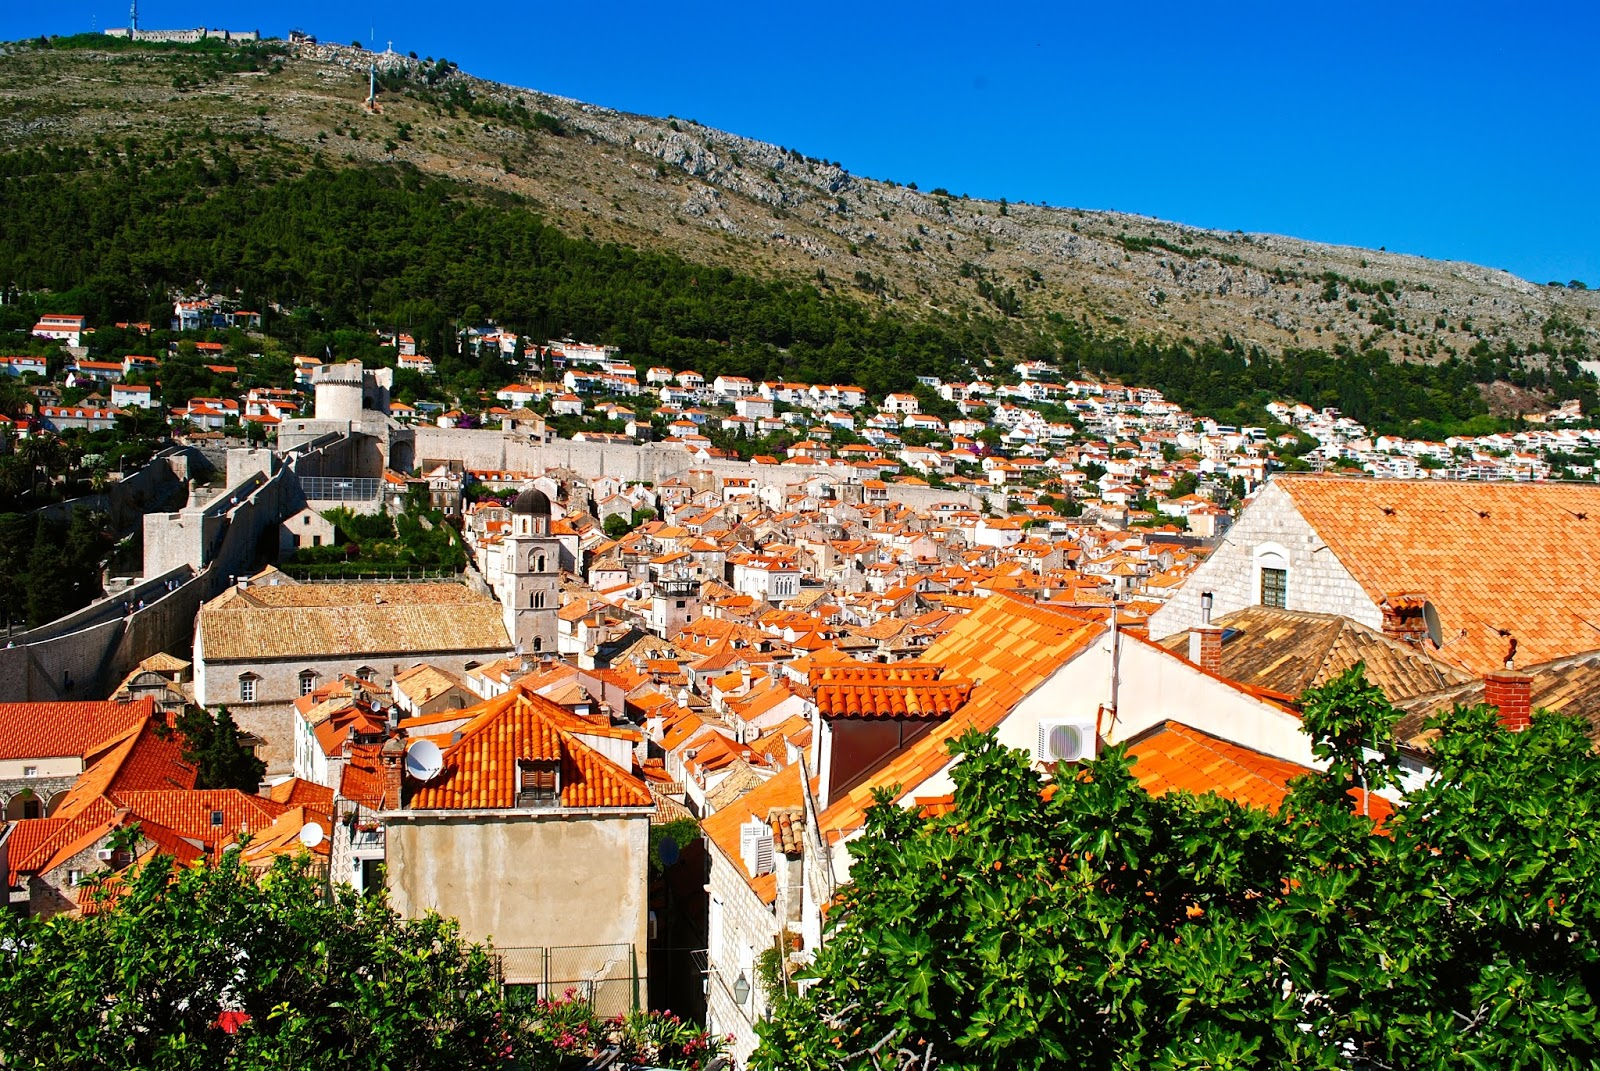 Walking the Old City Walls in Dubrovnik Croatia